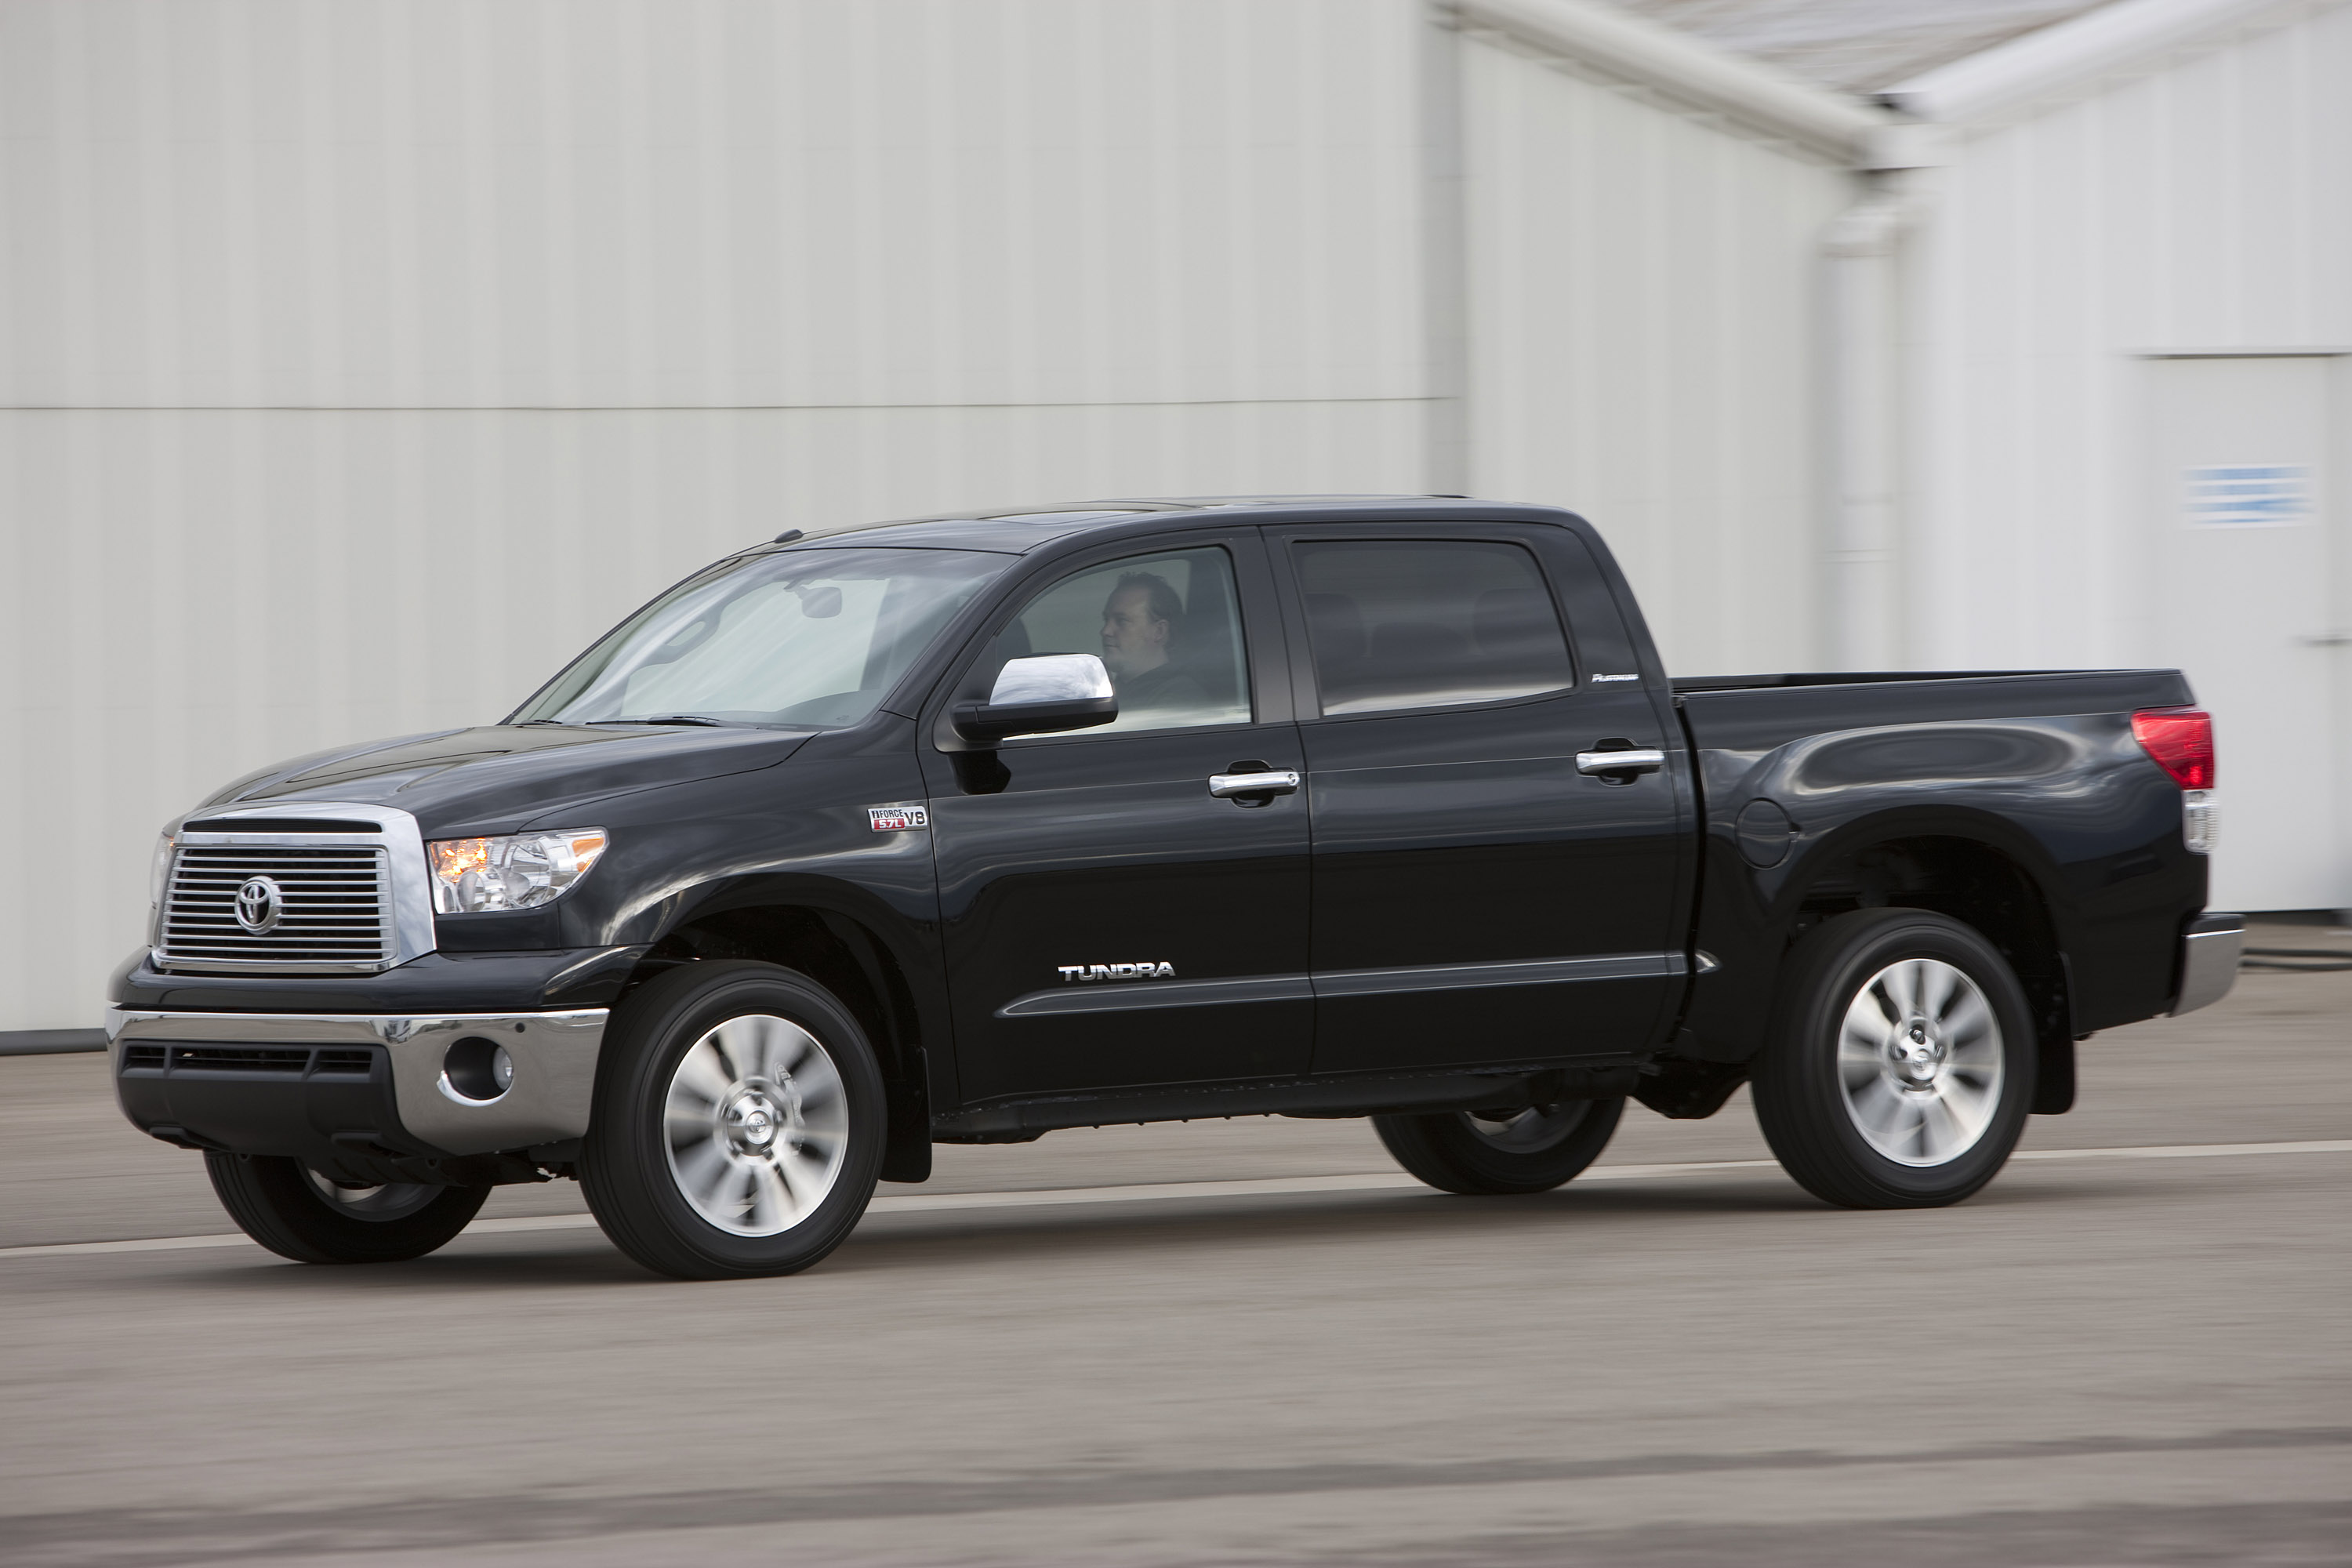 2012 Toyota Tundra Safety Review and Crash Test Ratings - The Car ...